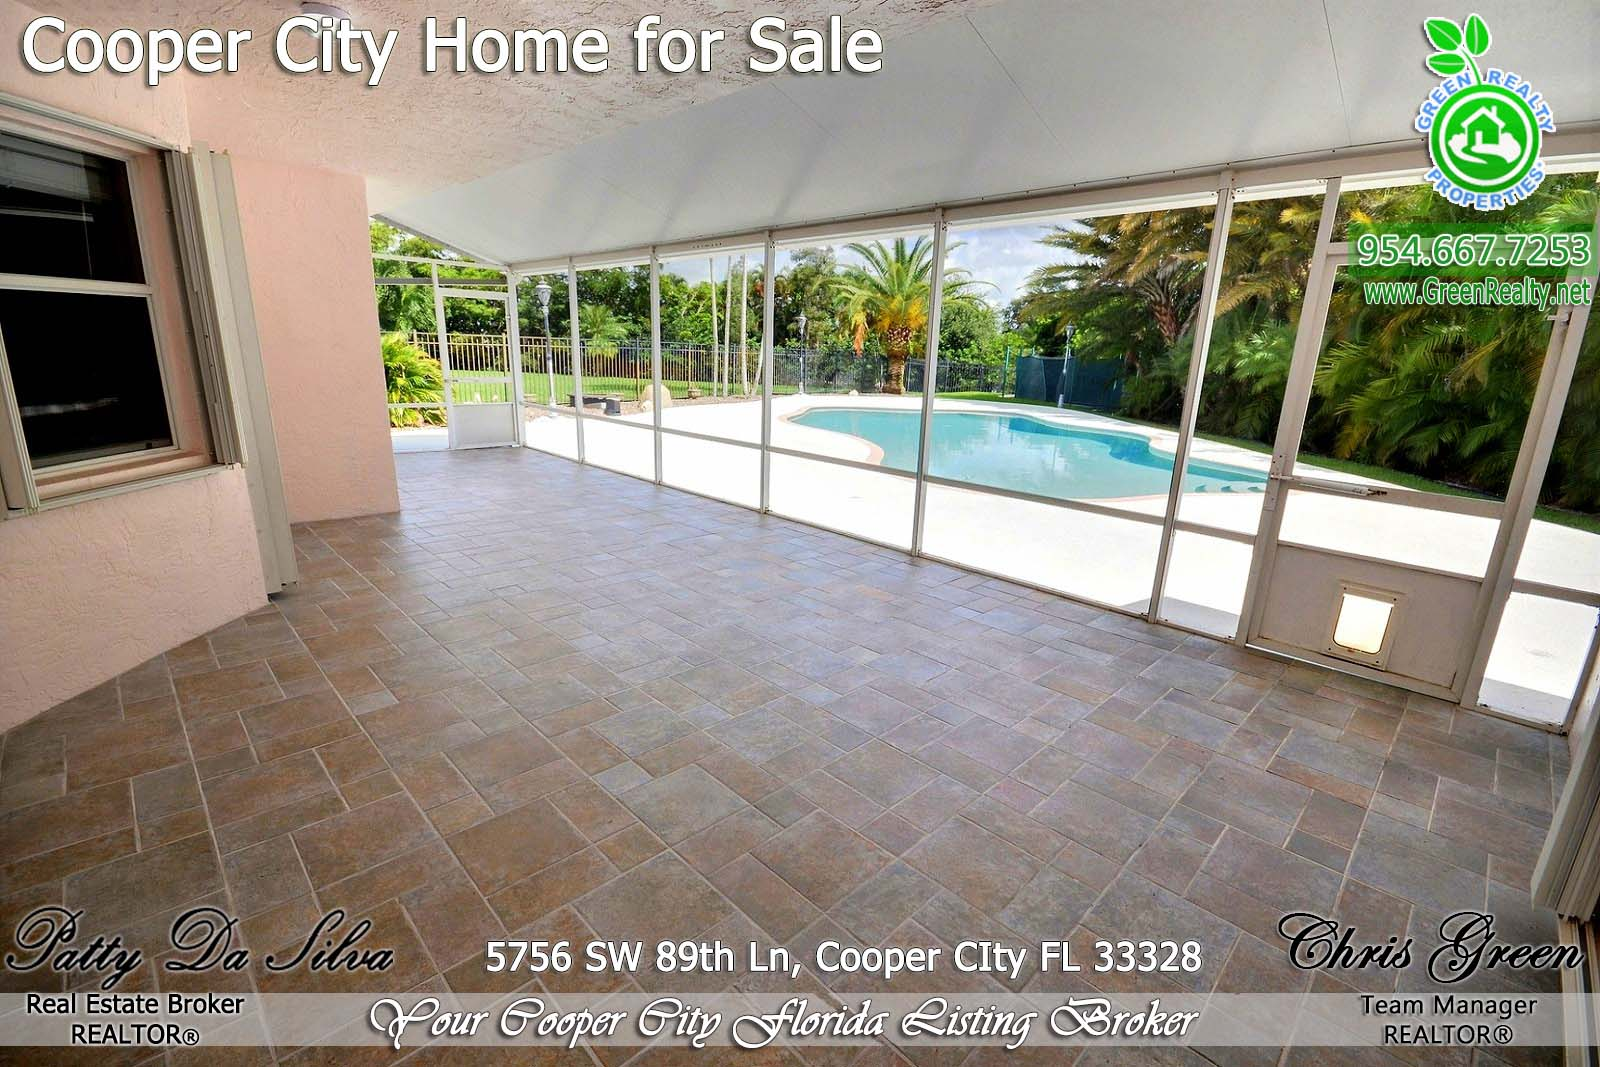 Coopers Pointe - Cooper City Florida Homes For Sale (21)